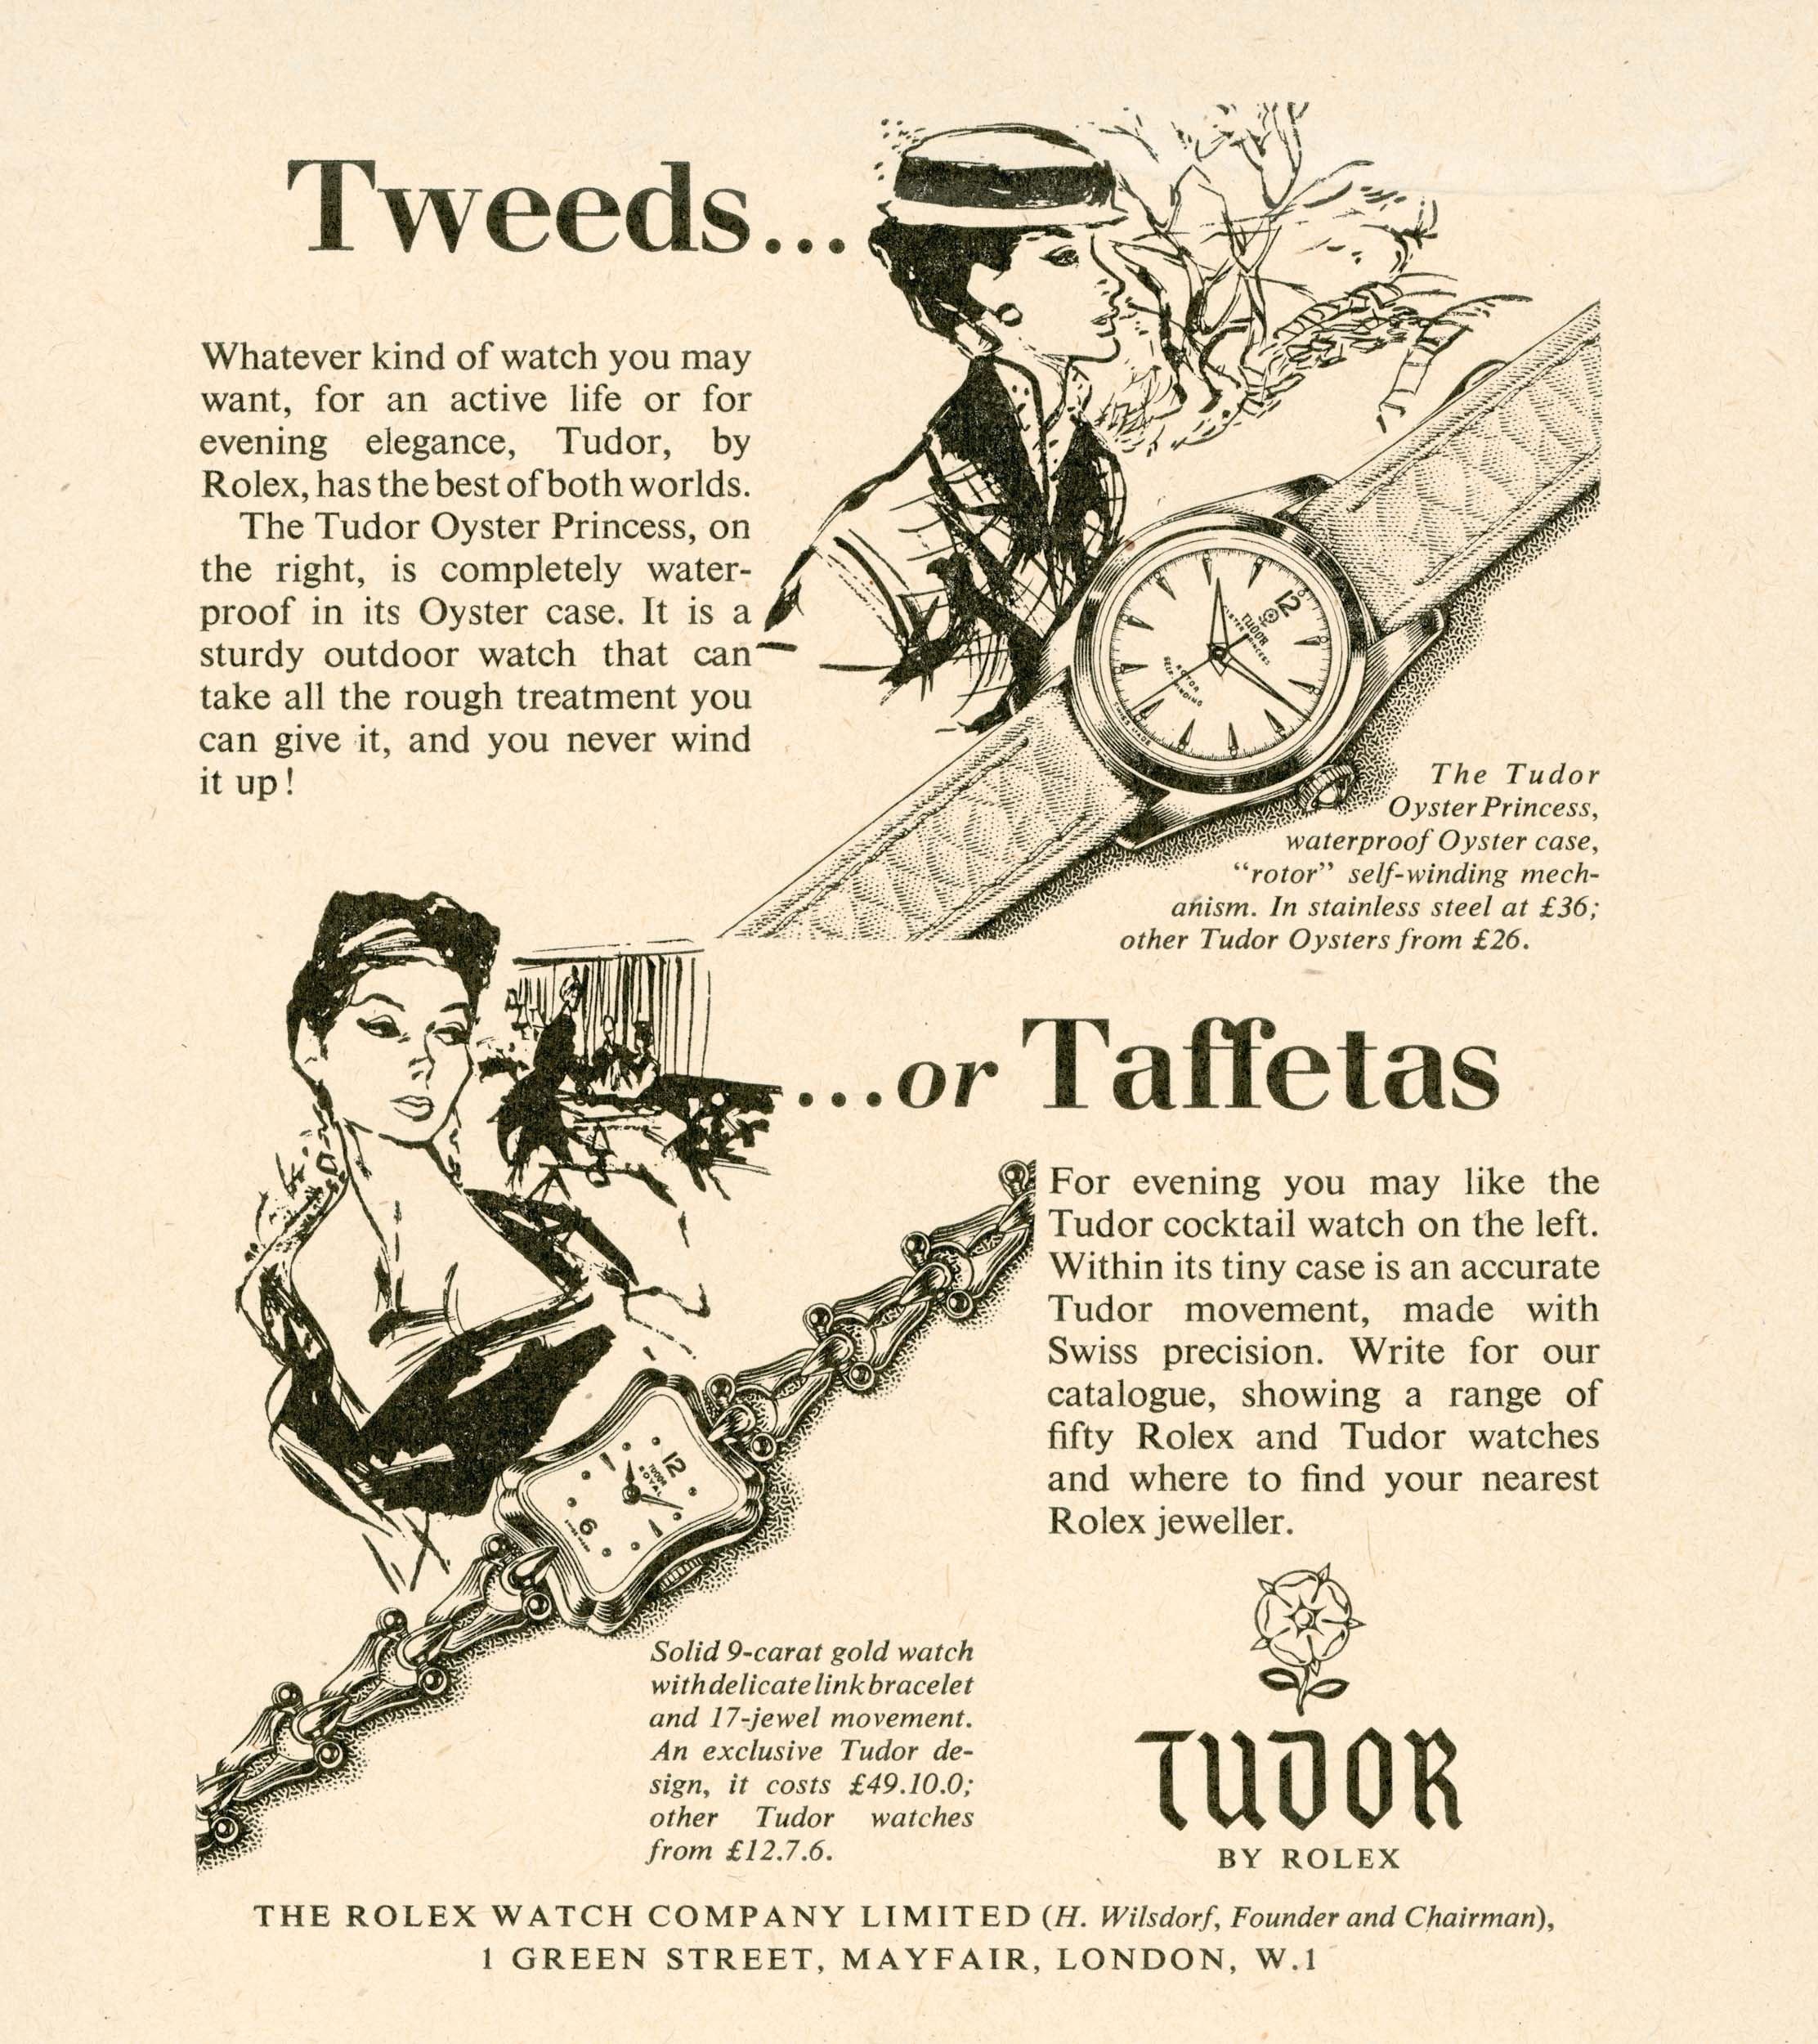 Tudor:Tweed or Taffetas